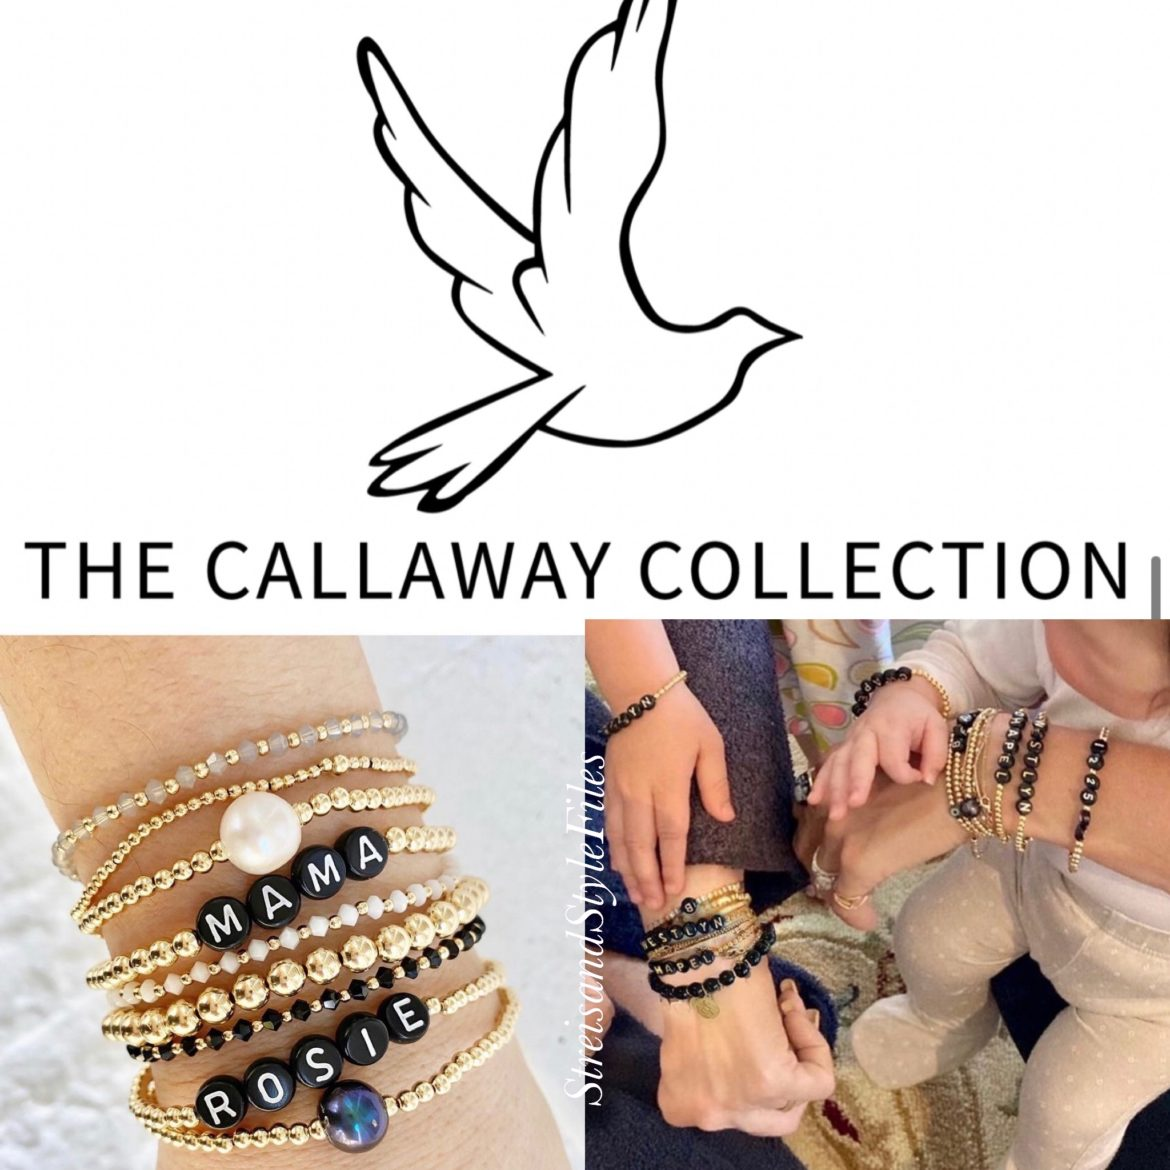 Barbra's custom name bracelets from The Callaway Collection